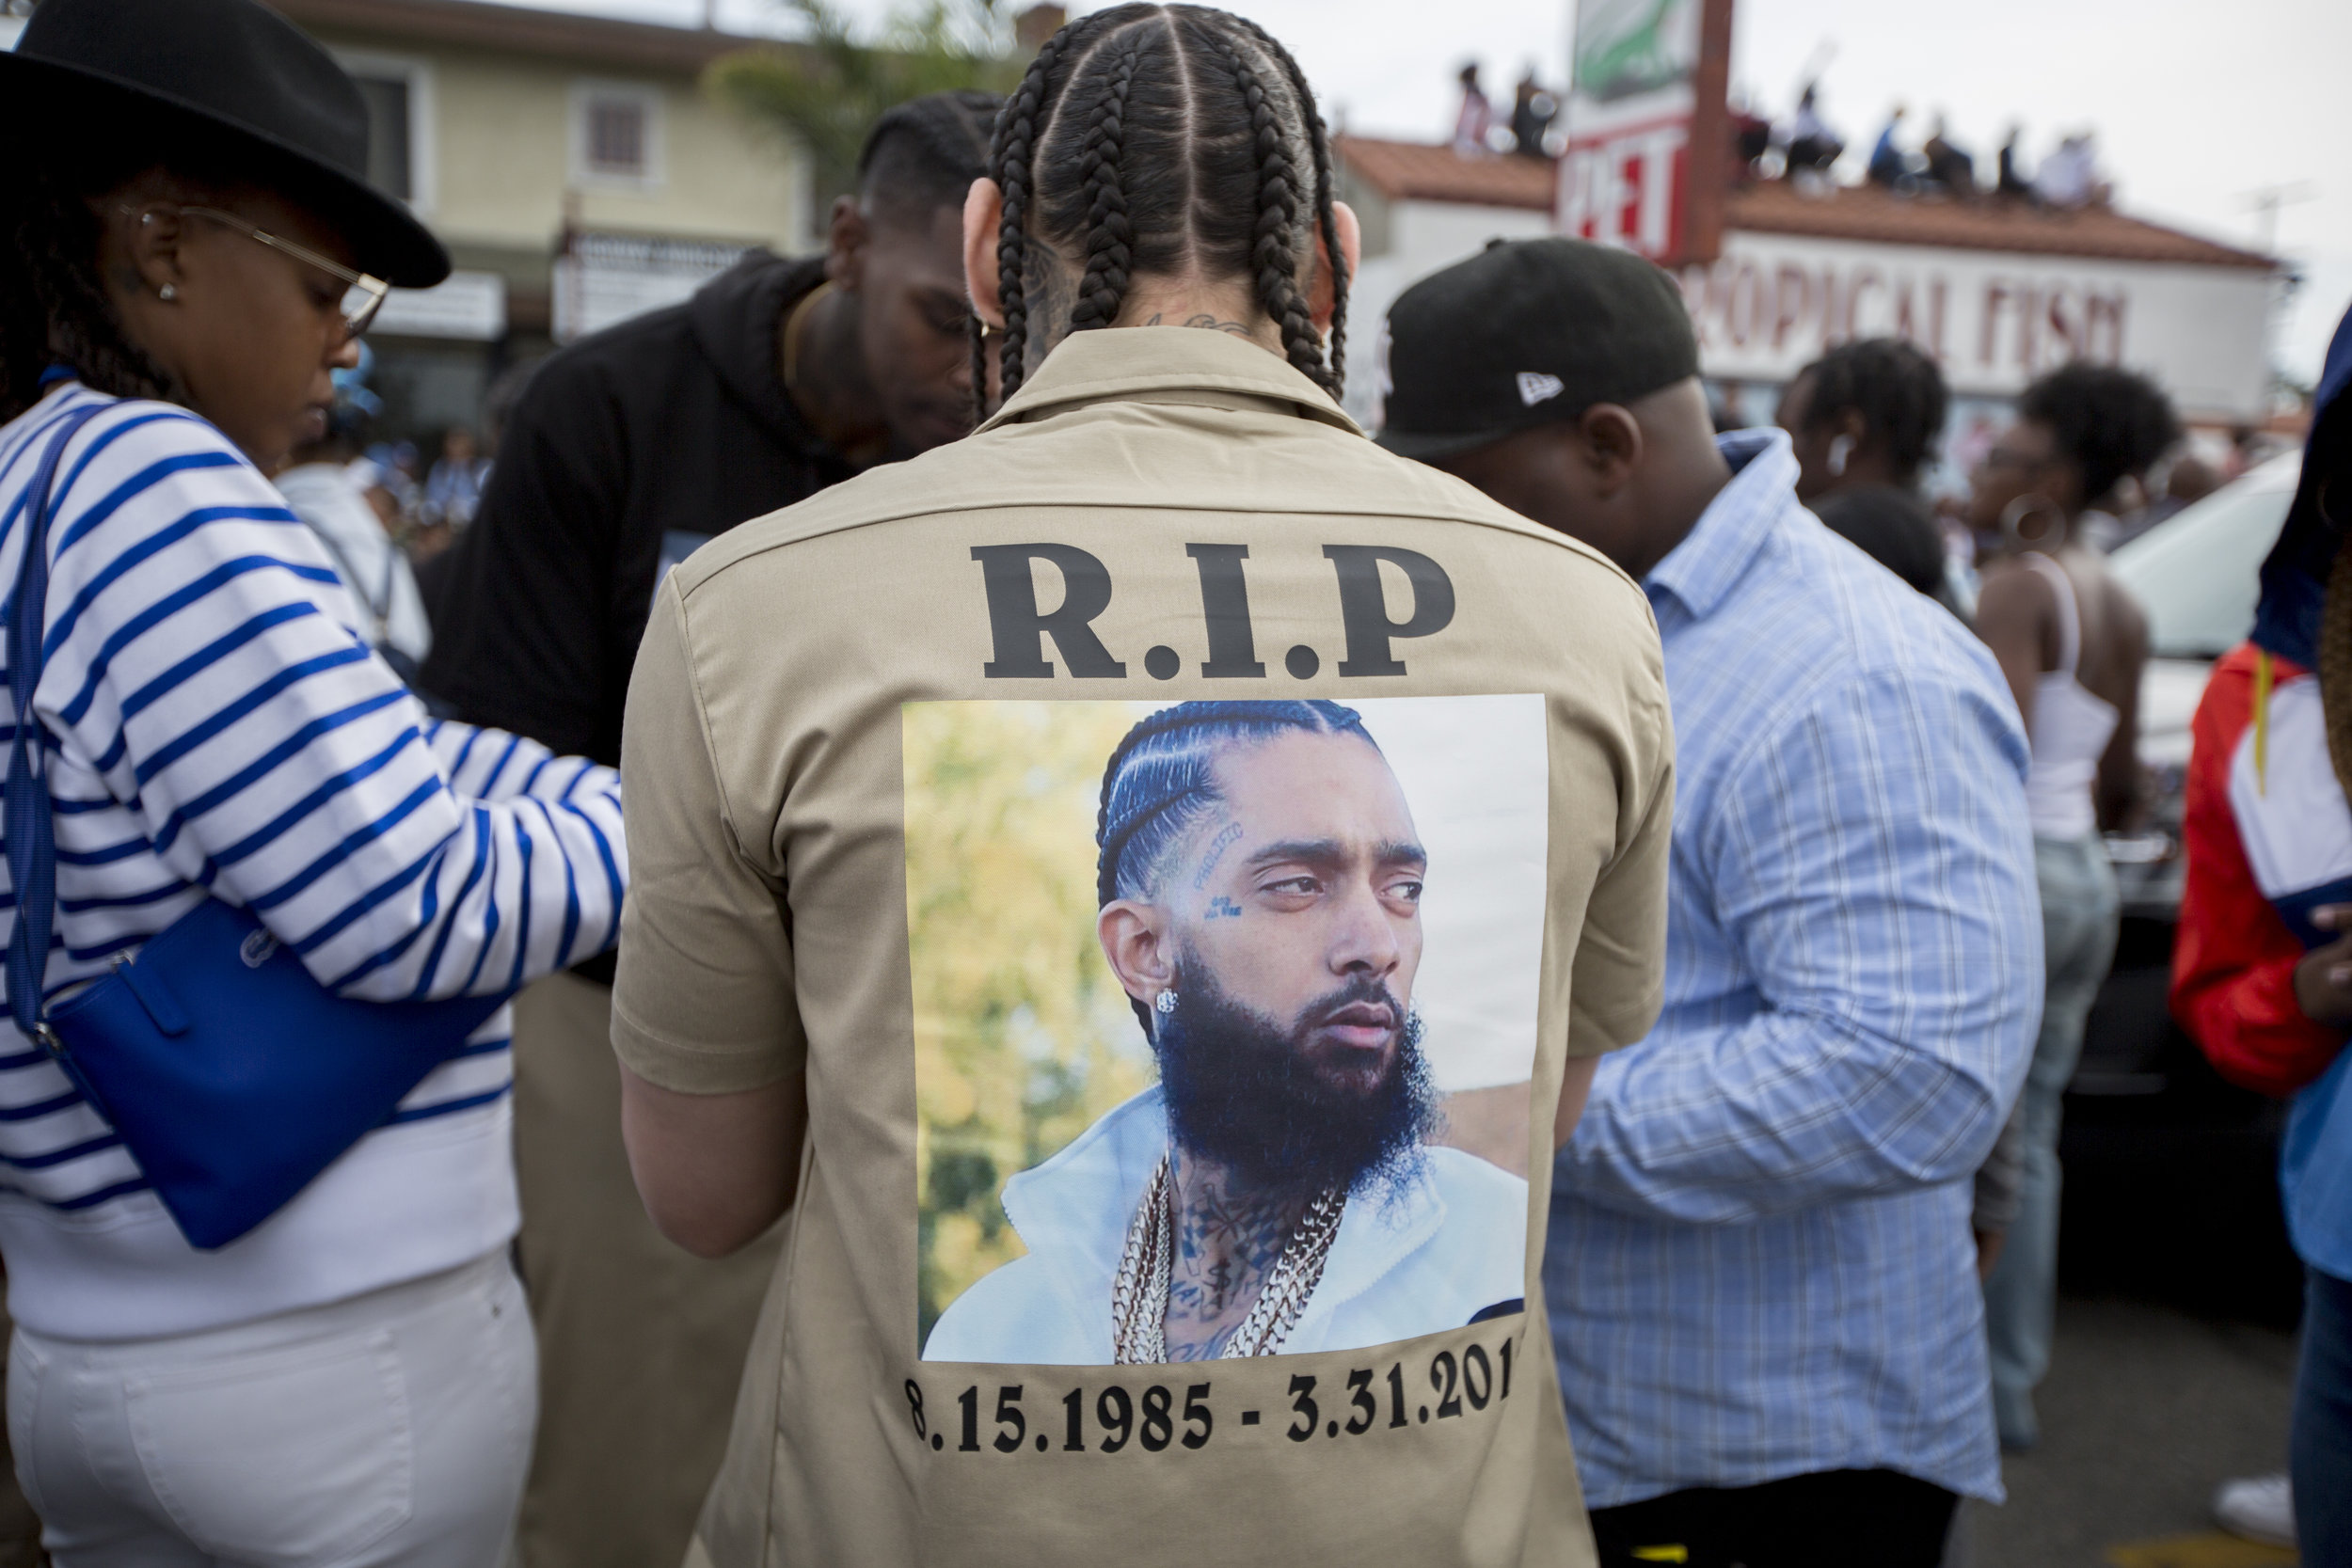 """Fans turn out to say goodbye to Nipsey Hussle, wearing his image on their clothing, along Slauson Avenue in Los Angeles, California on April 11, 2019.  The hearse carrying the casket of the slain rapper, Nipsey Hussle, will journey a 25.5 mile """"Victory Lap"""" through South Central and ending at the Angelus Funeral home to allow his fans, who could not attend the ceremony, to say goodbye.  (Jose Lopez)"""